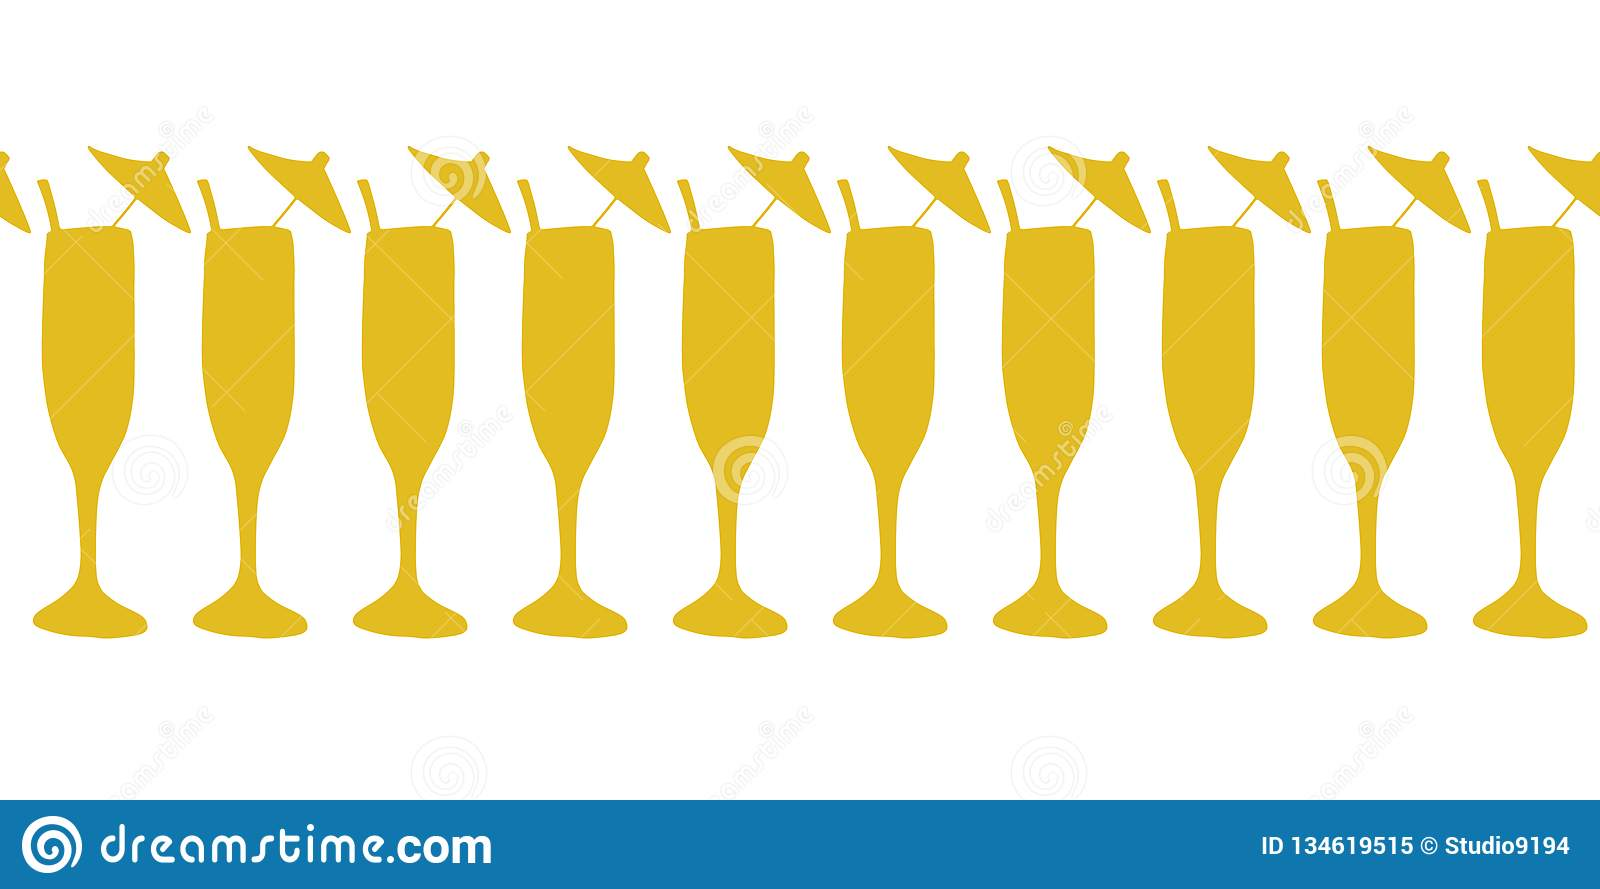 Cocktail glasses gold on white seamless vector border. Drinking glasses, champagne, cocktail flutes. Use for celebrations,